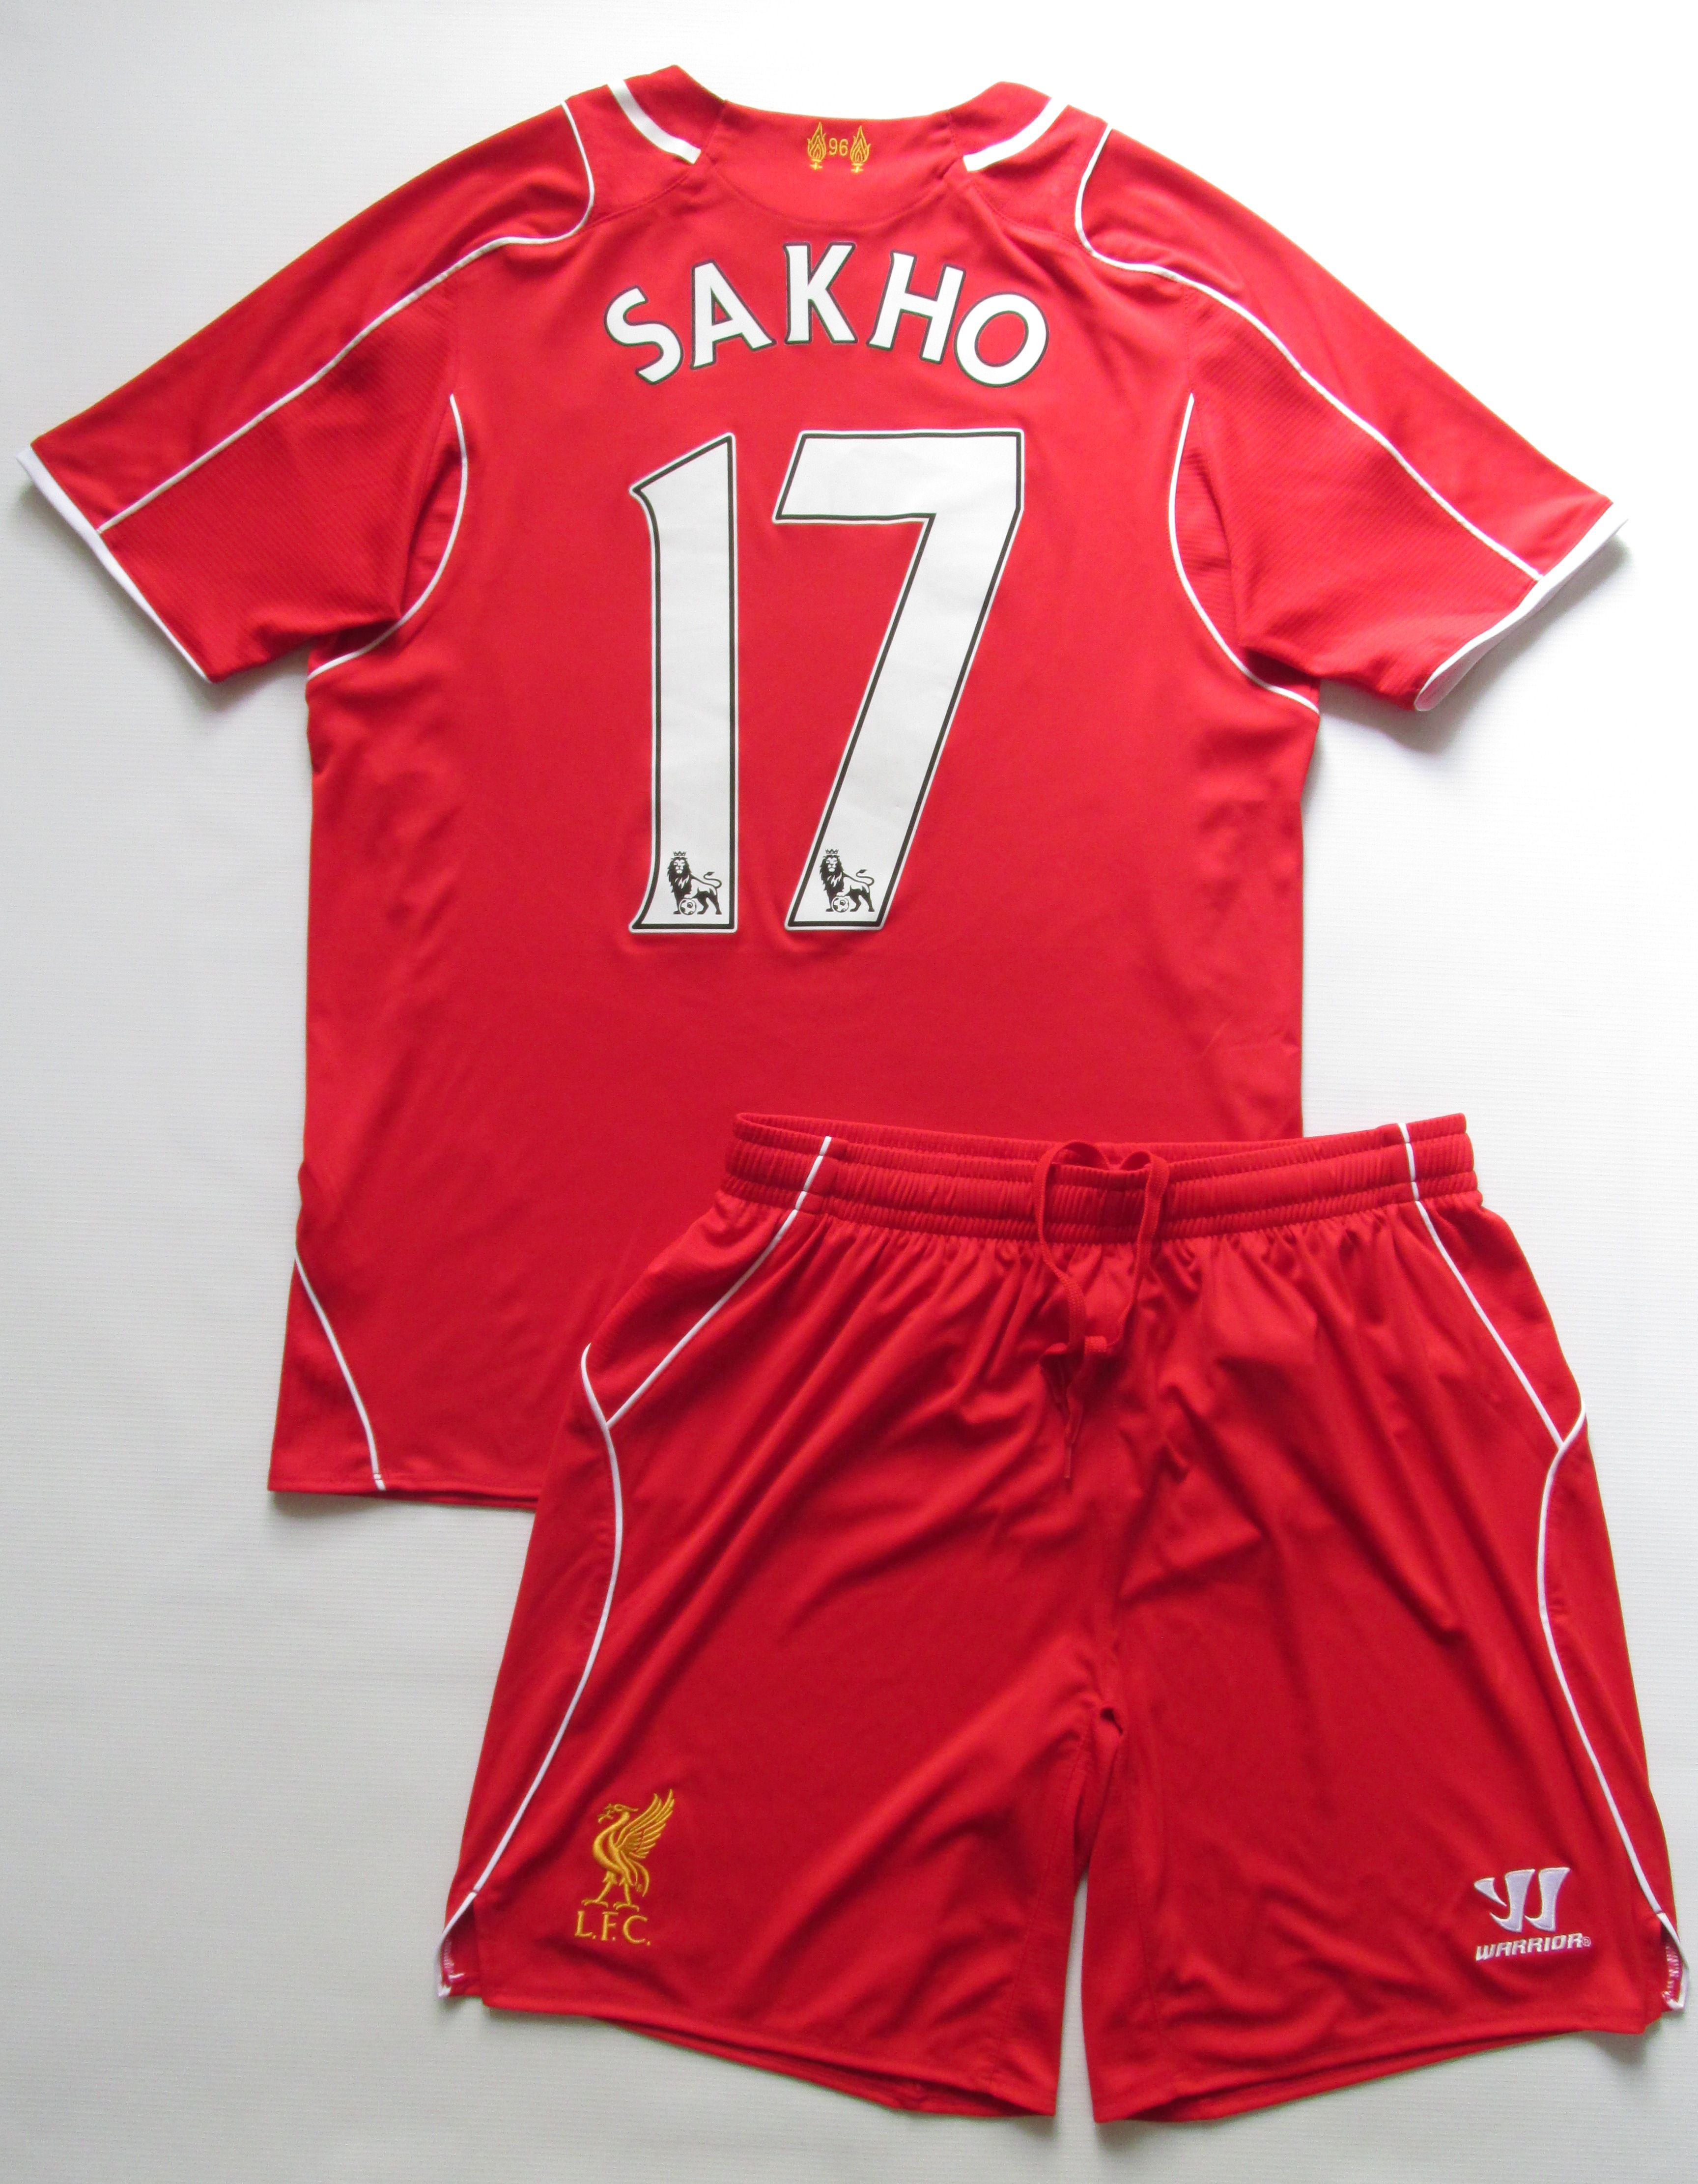 0eb20783d Liverpool 2014 2015 home football kit Mamadou Sakho  17 by Warrior LFC  LiverpoolFC jersey footballshirt reds England premierleague soccer   Liverpool  lfc ...